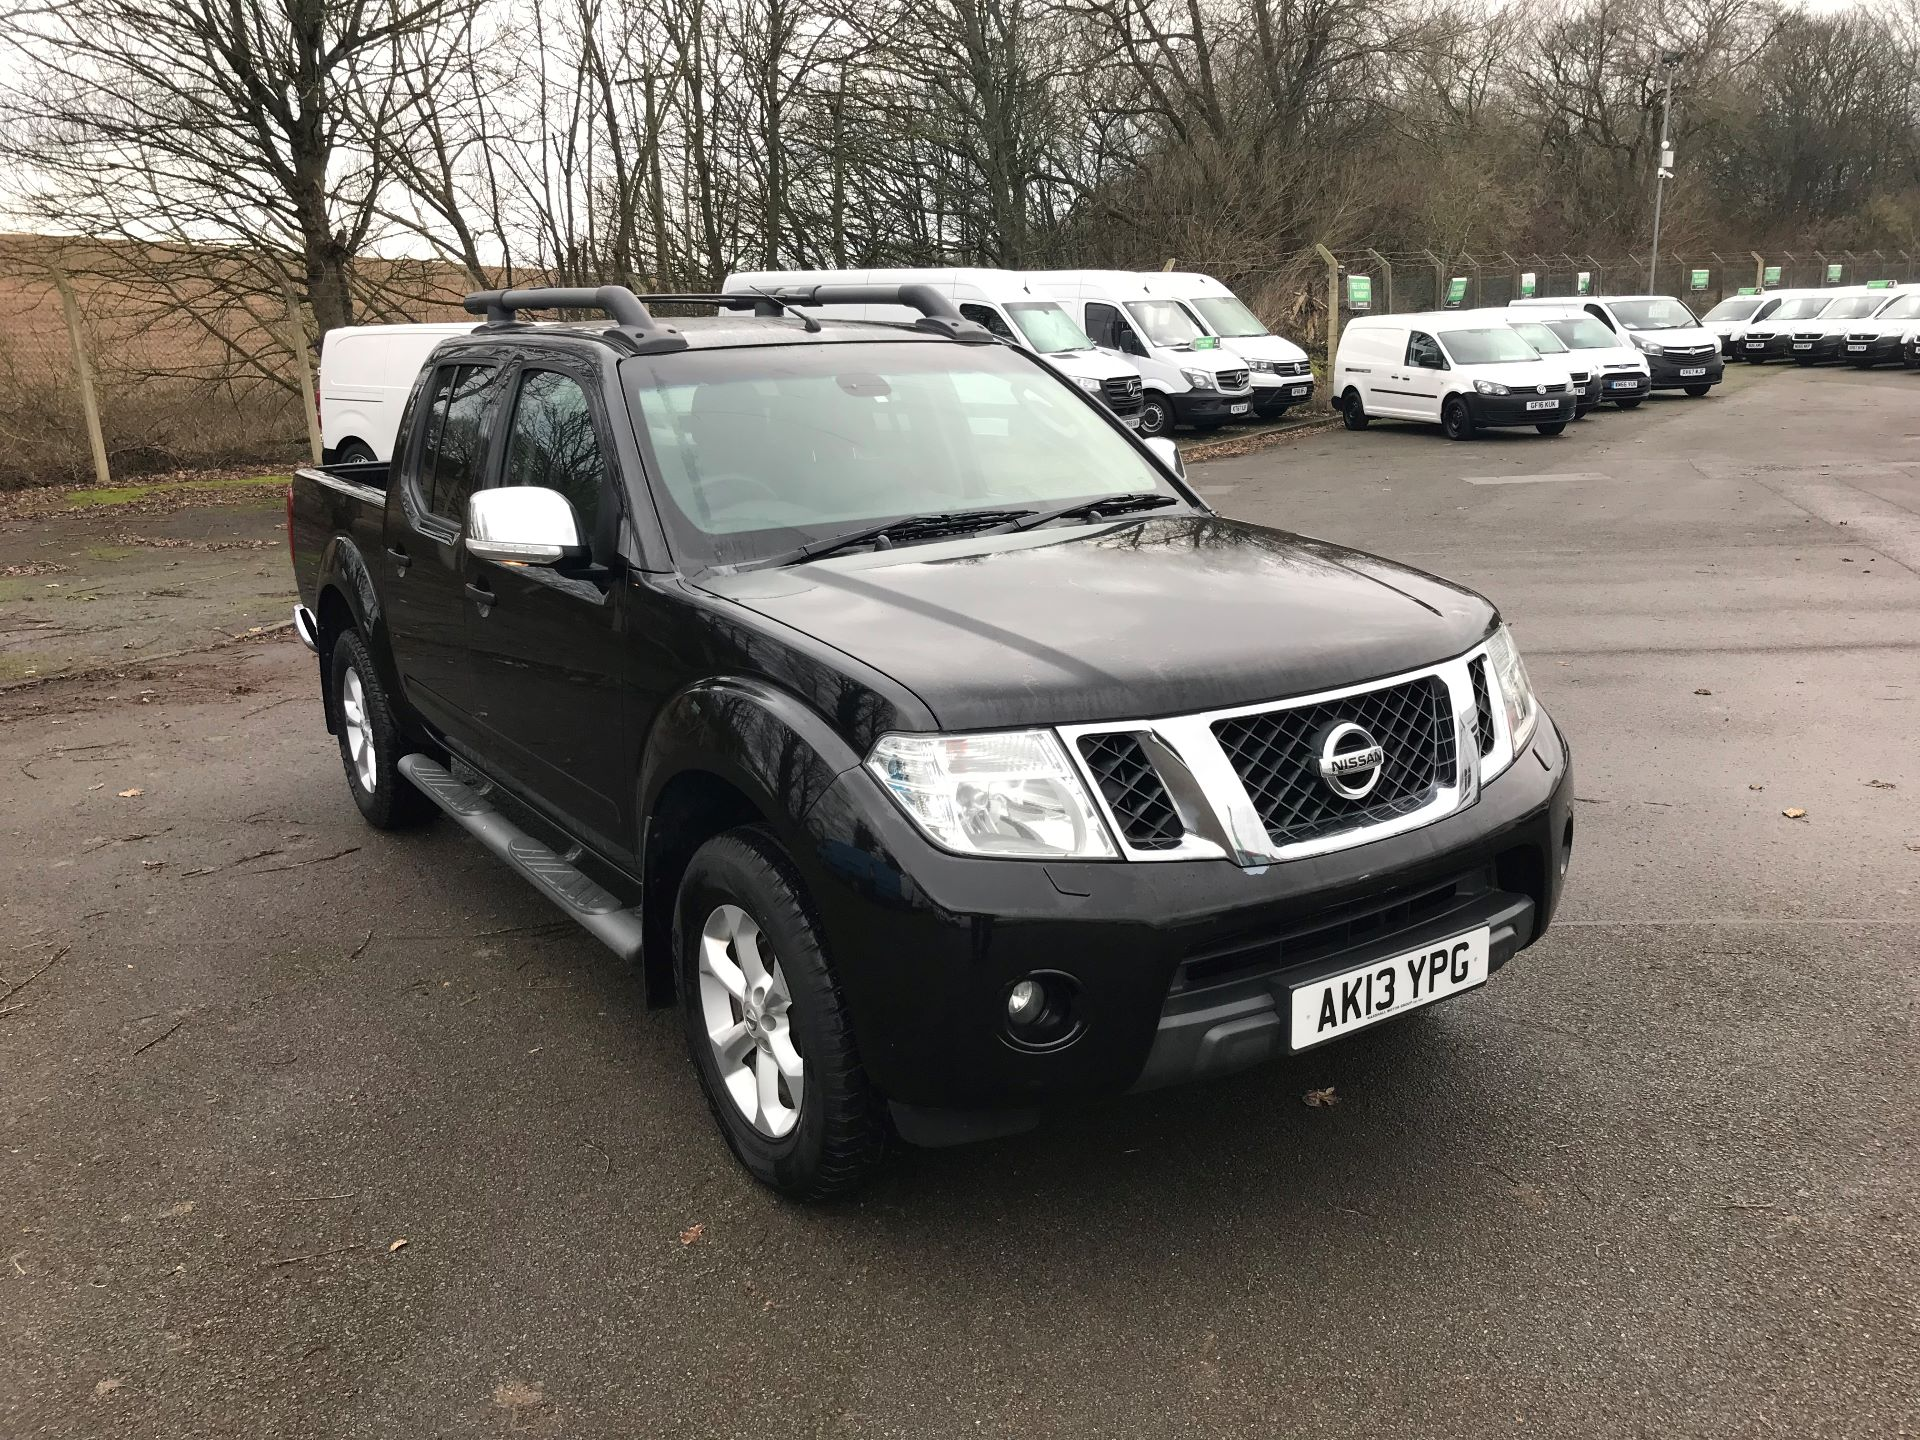 2013 Nissan Navara DOUBLE CAB  PICK UP TEKNA 2.5DCI 190 4WD **NO VAT** (AK13YPG)